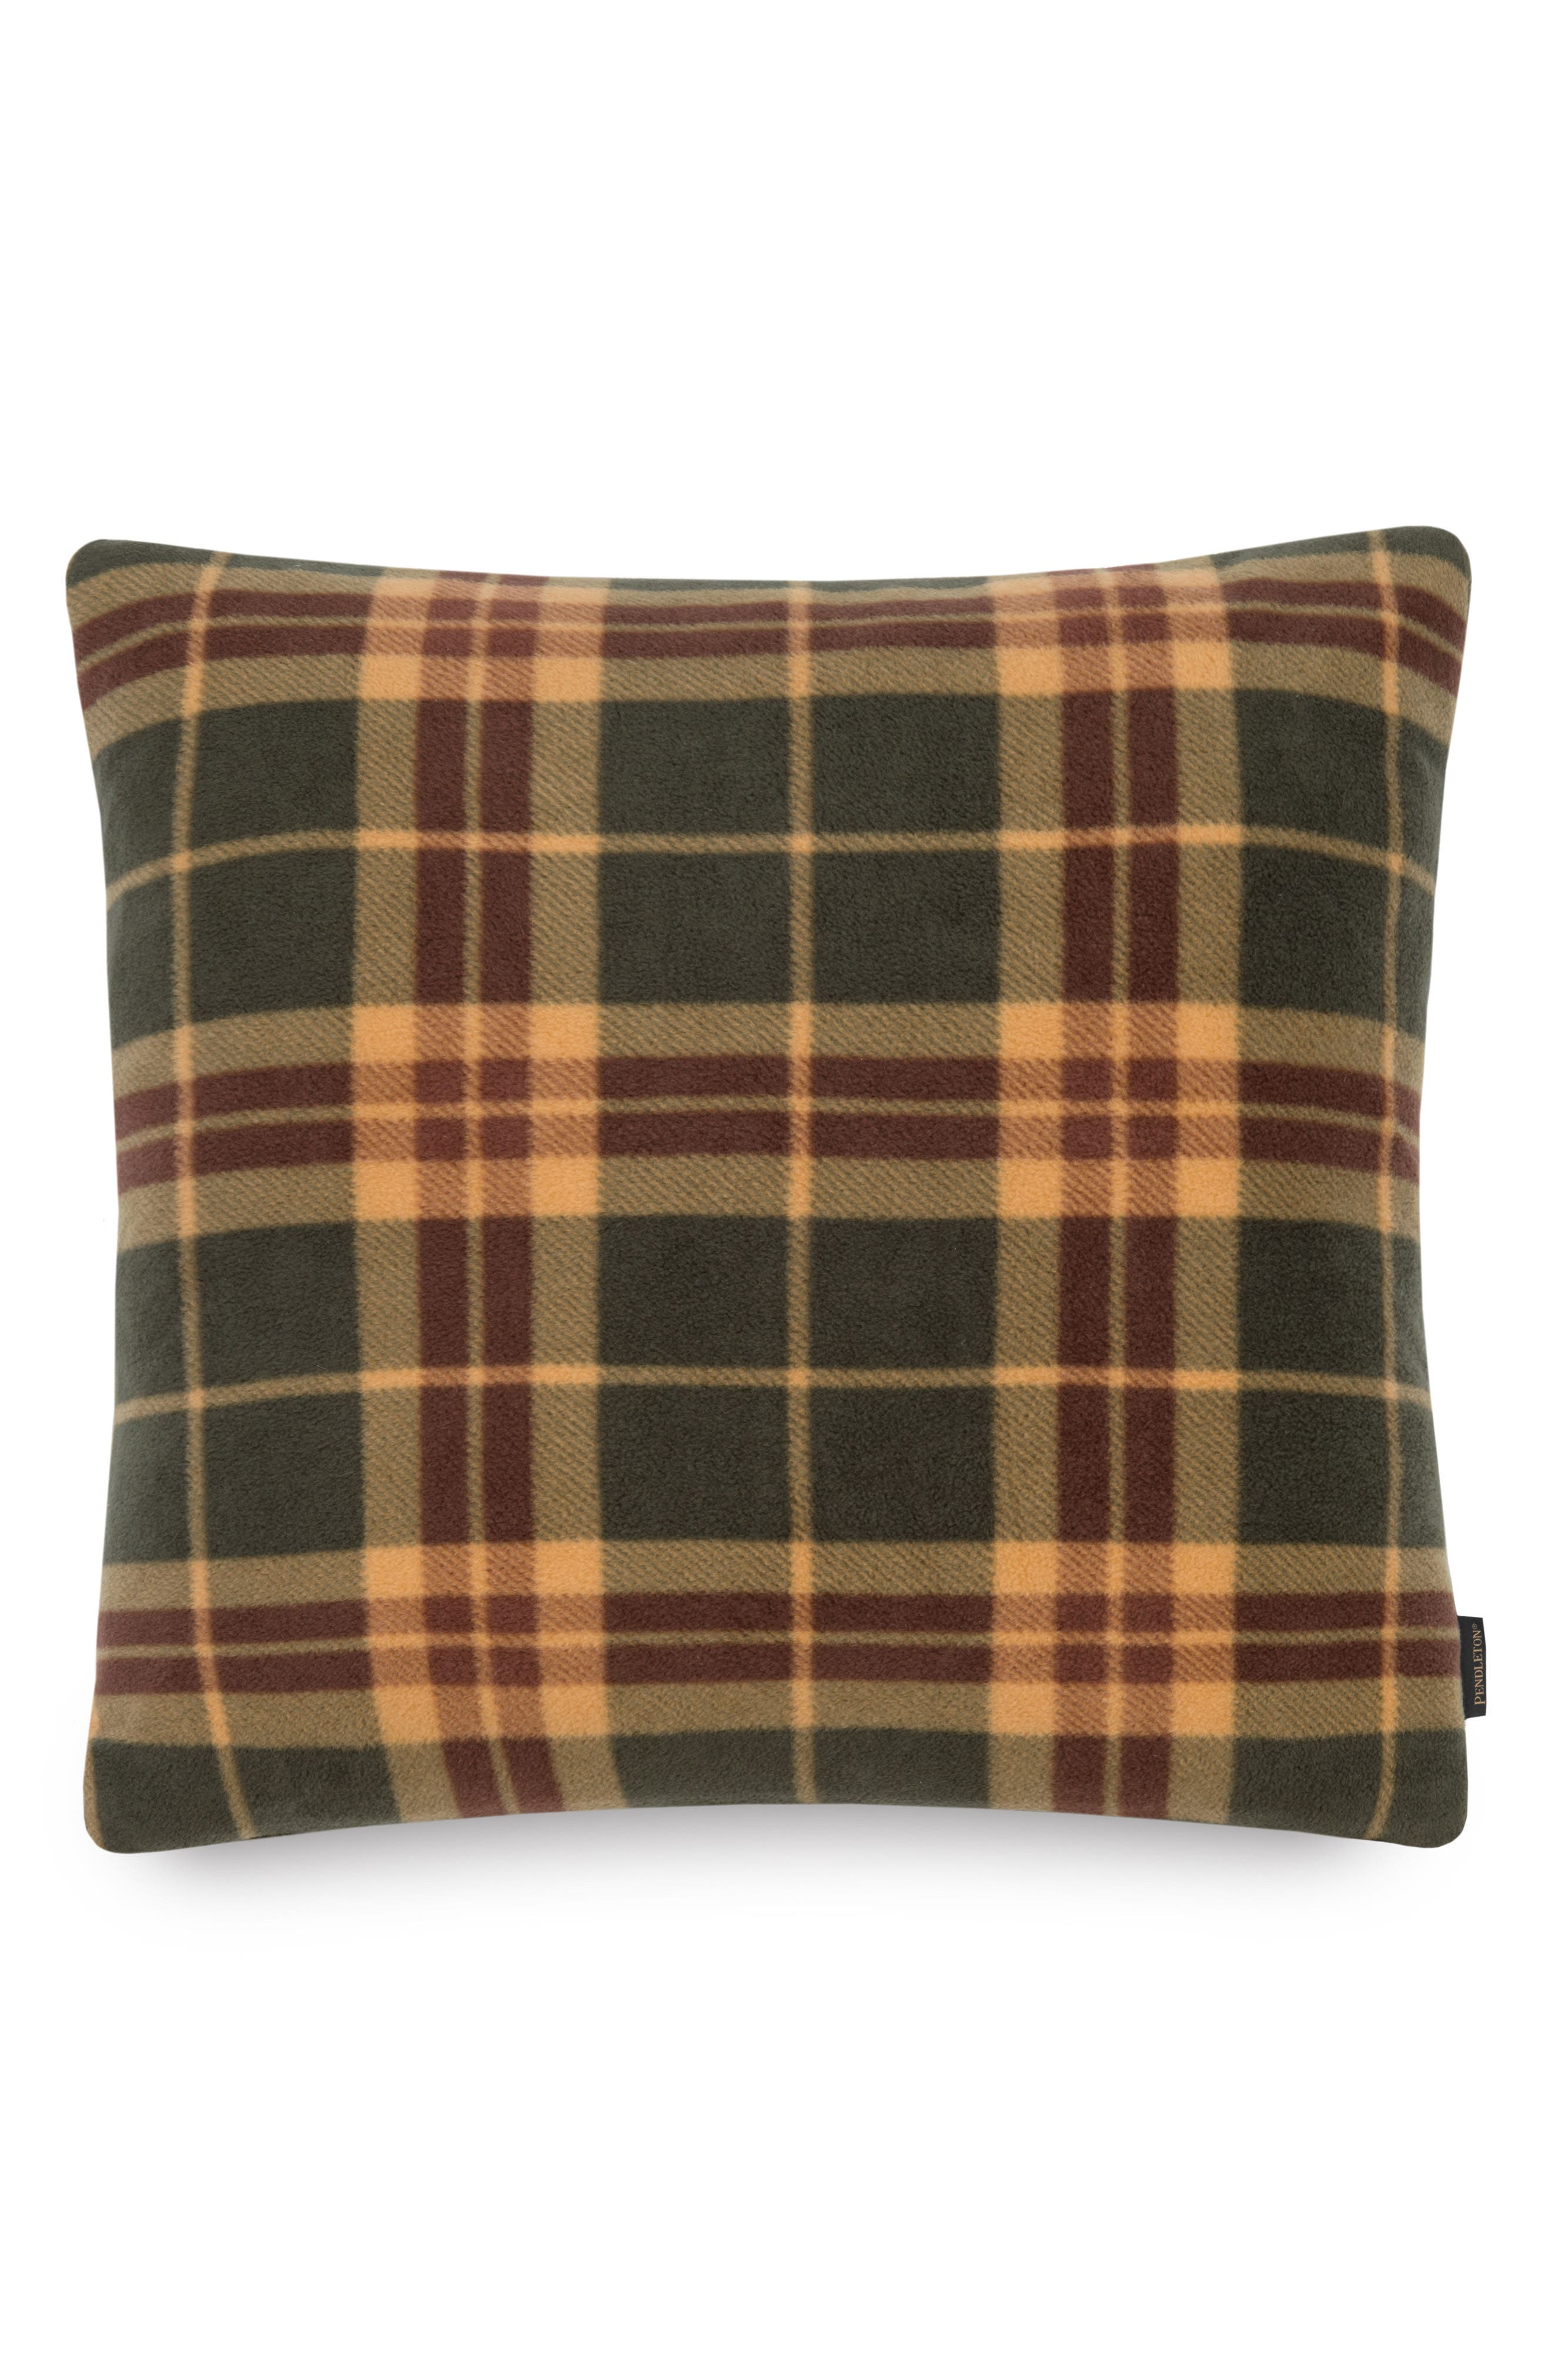 Ambler Plaid Pillow,                             Main thumbnail 1, color,                             Hunter